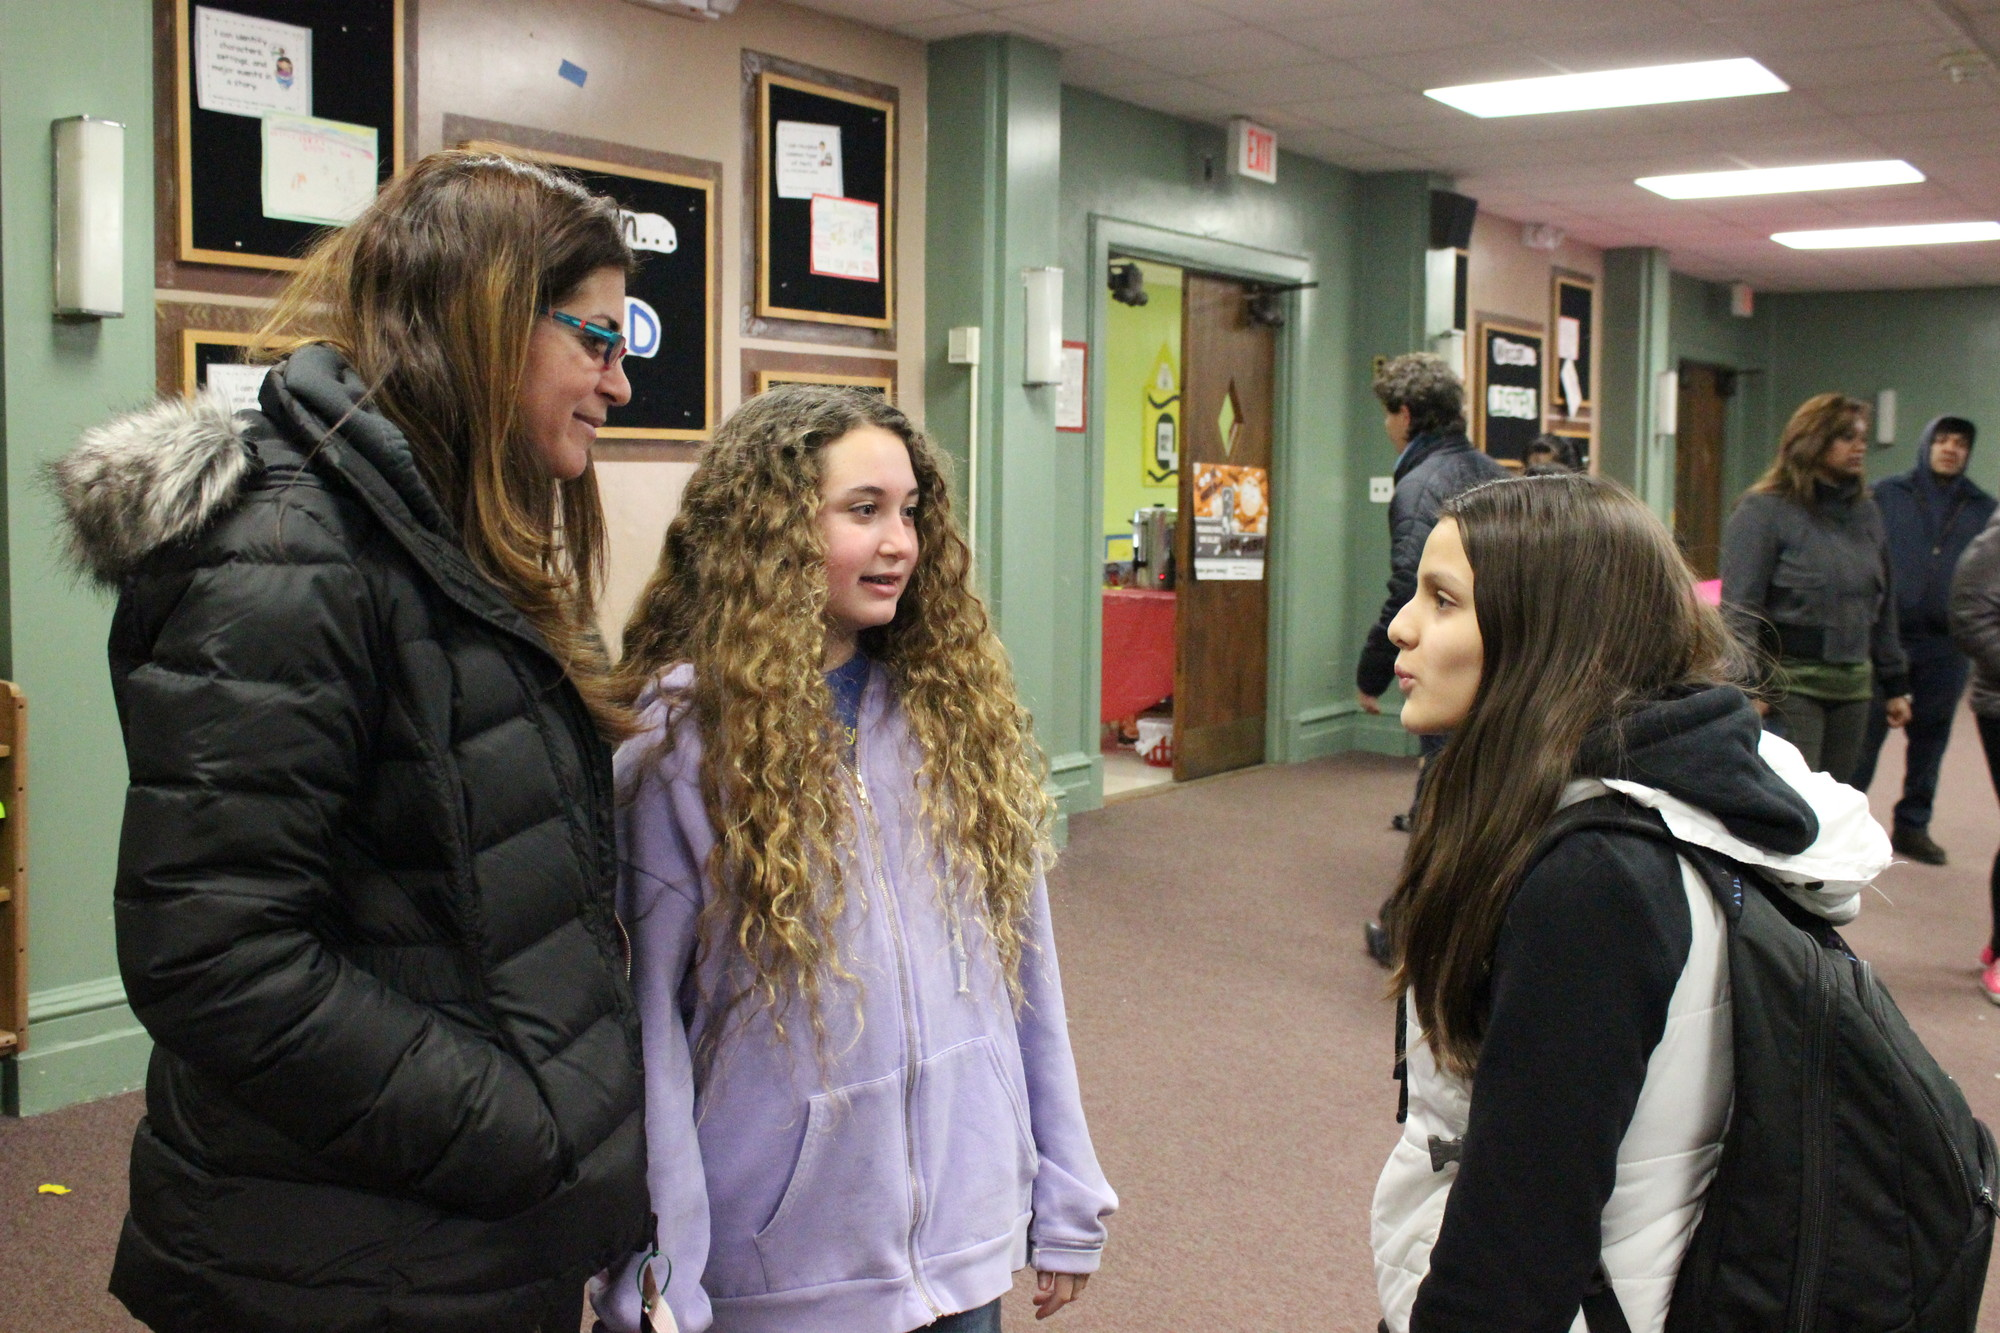 Lawrence Middle School was evacuated due to a gas leak on March 13. Ilene Parnes picked up her daughter Lucy, center, at the number Four School, as Melina Metopolis wanted for her parents.